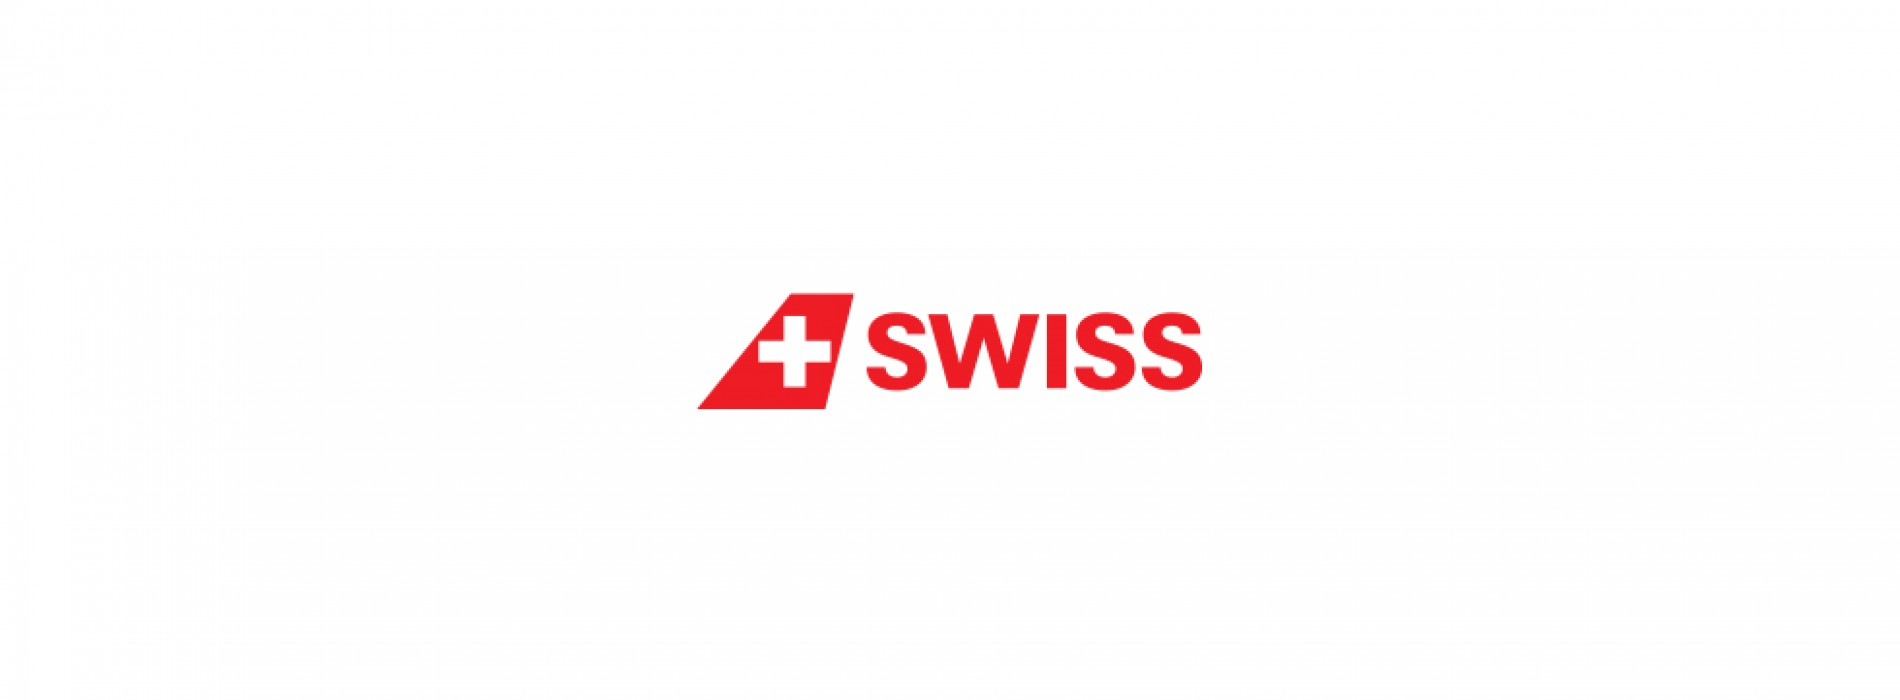 SWISS introduces new advance-purchase vouchers for airport lounge access and internet on board